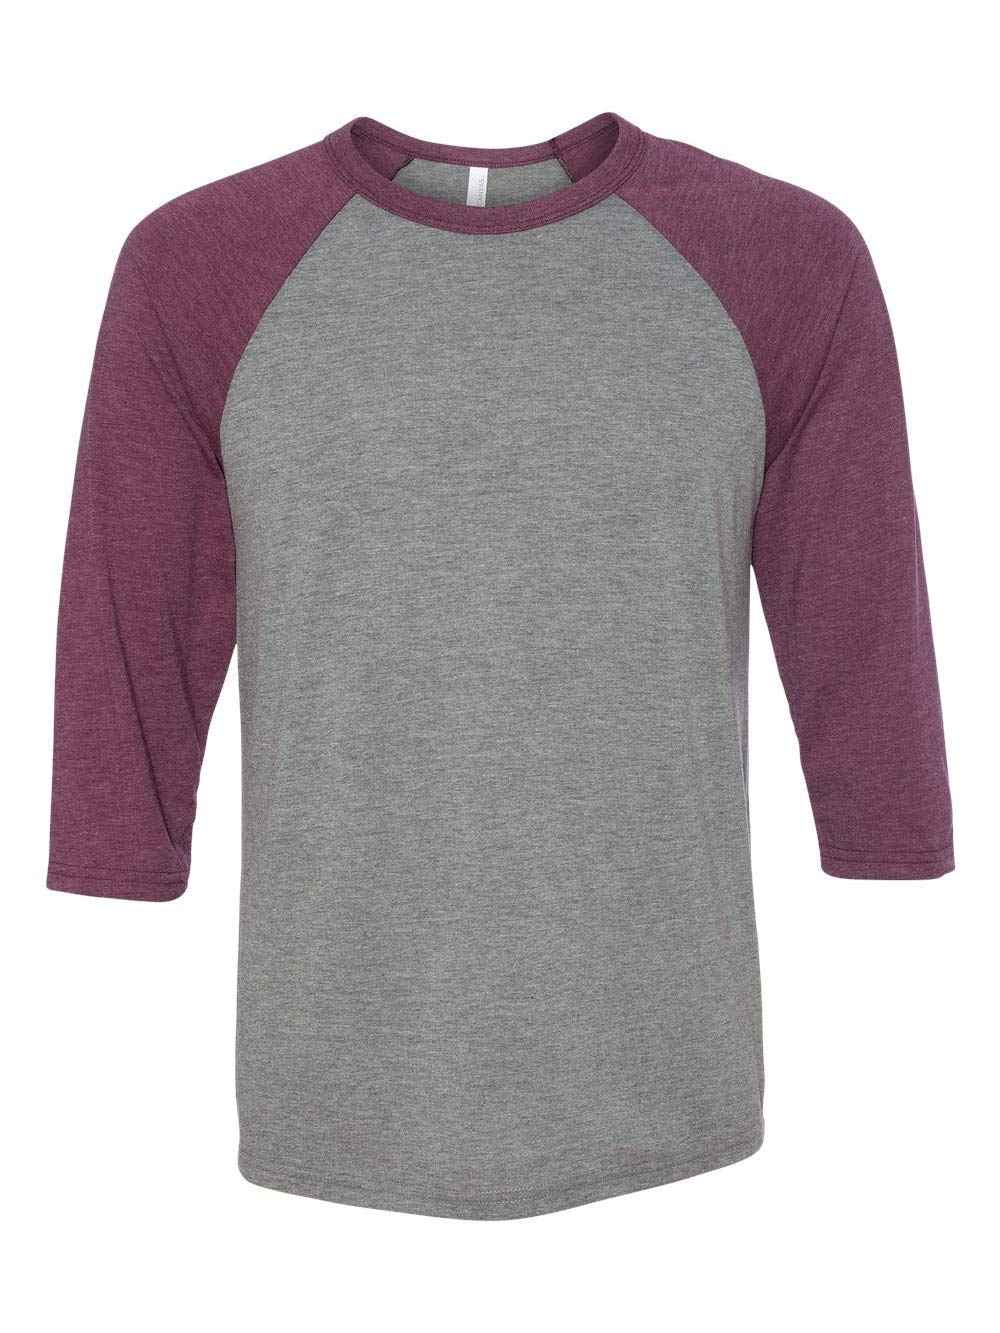 Bella 3200 Unisex 3 By 4 Sleeve Baseball Tee - Grey & Maroon Triblend, Extra Large